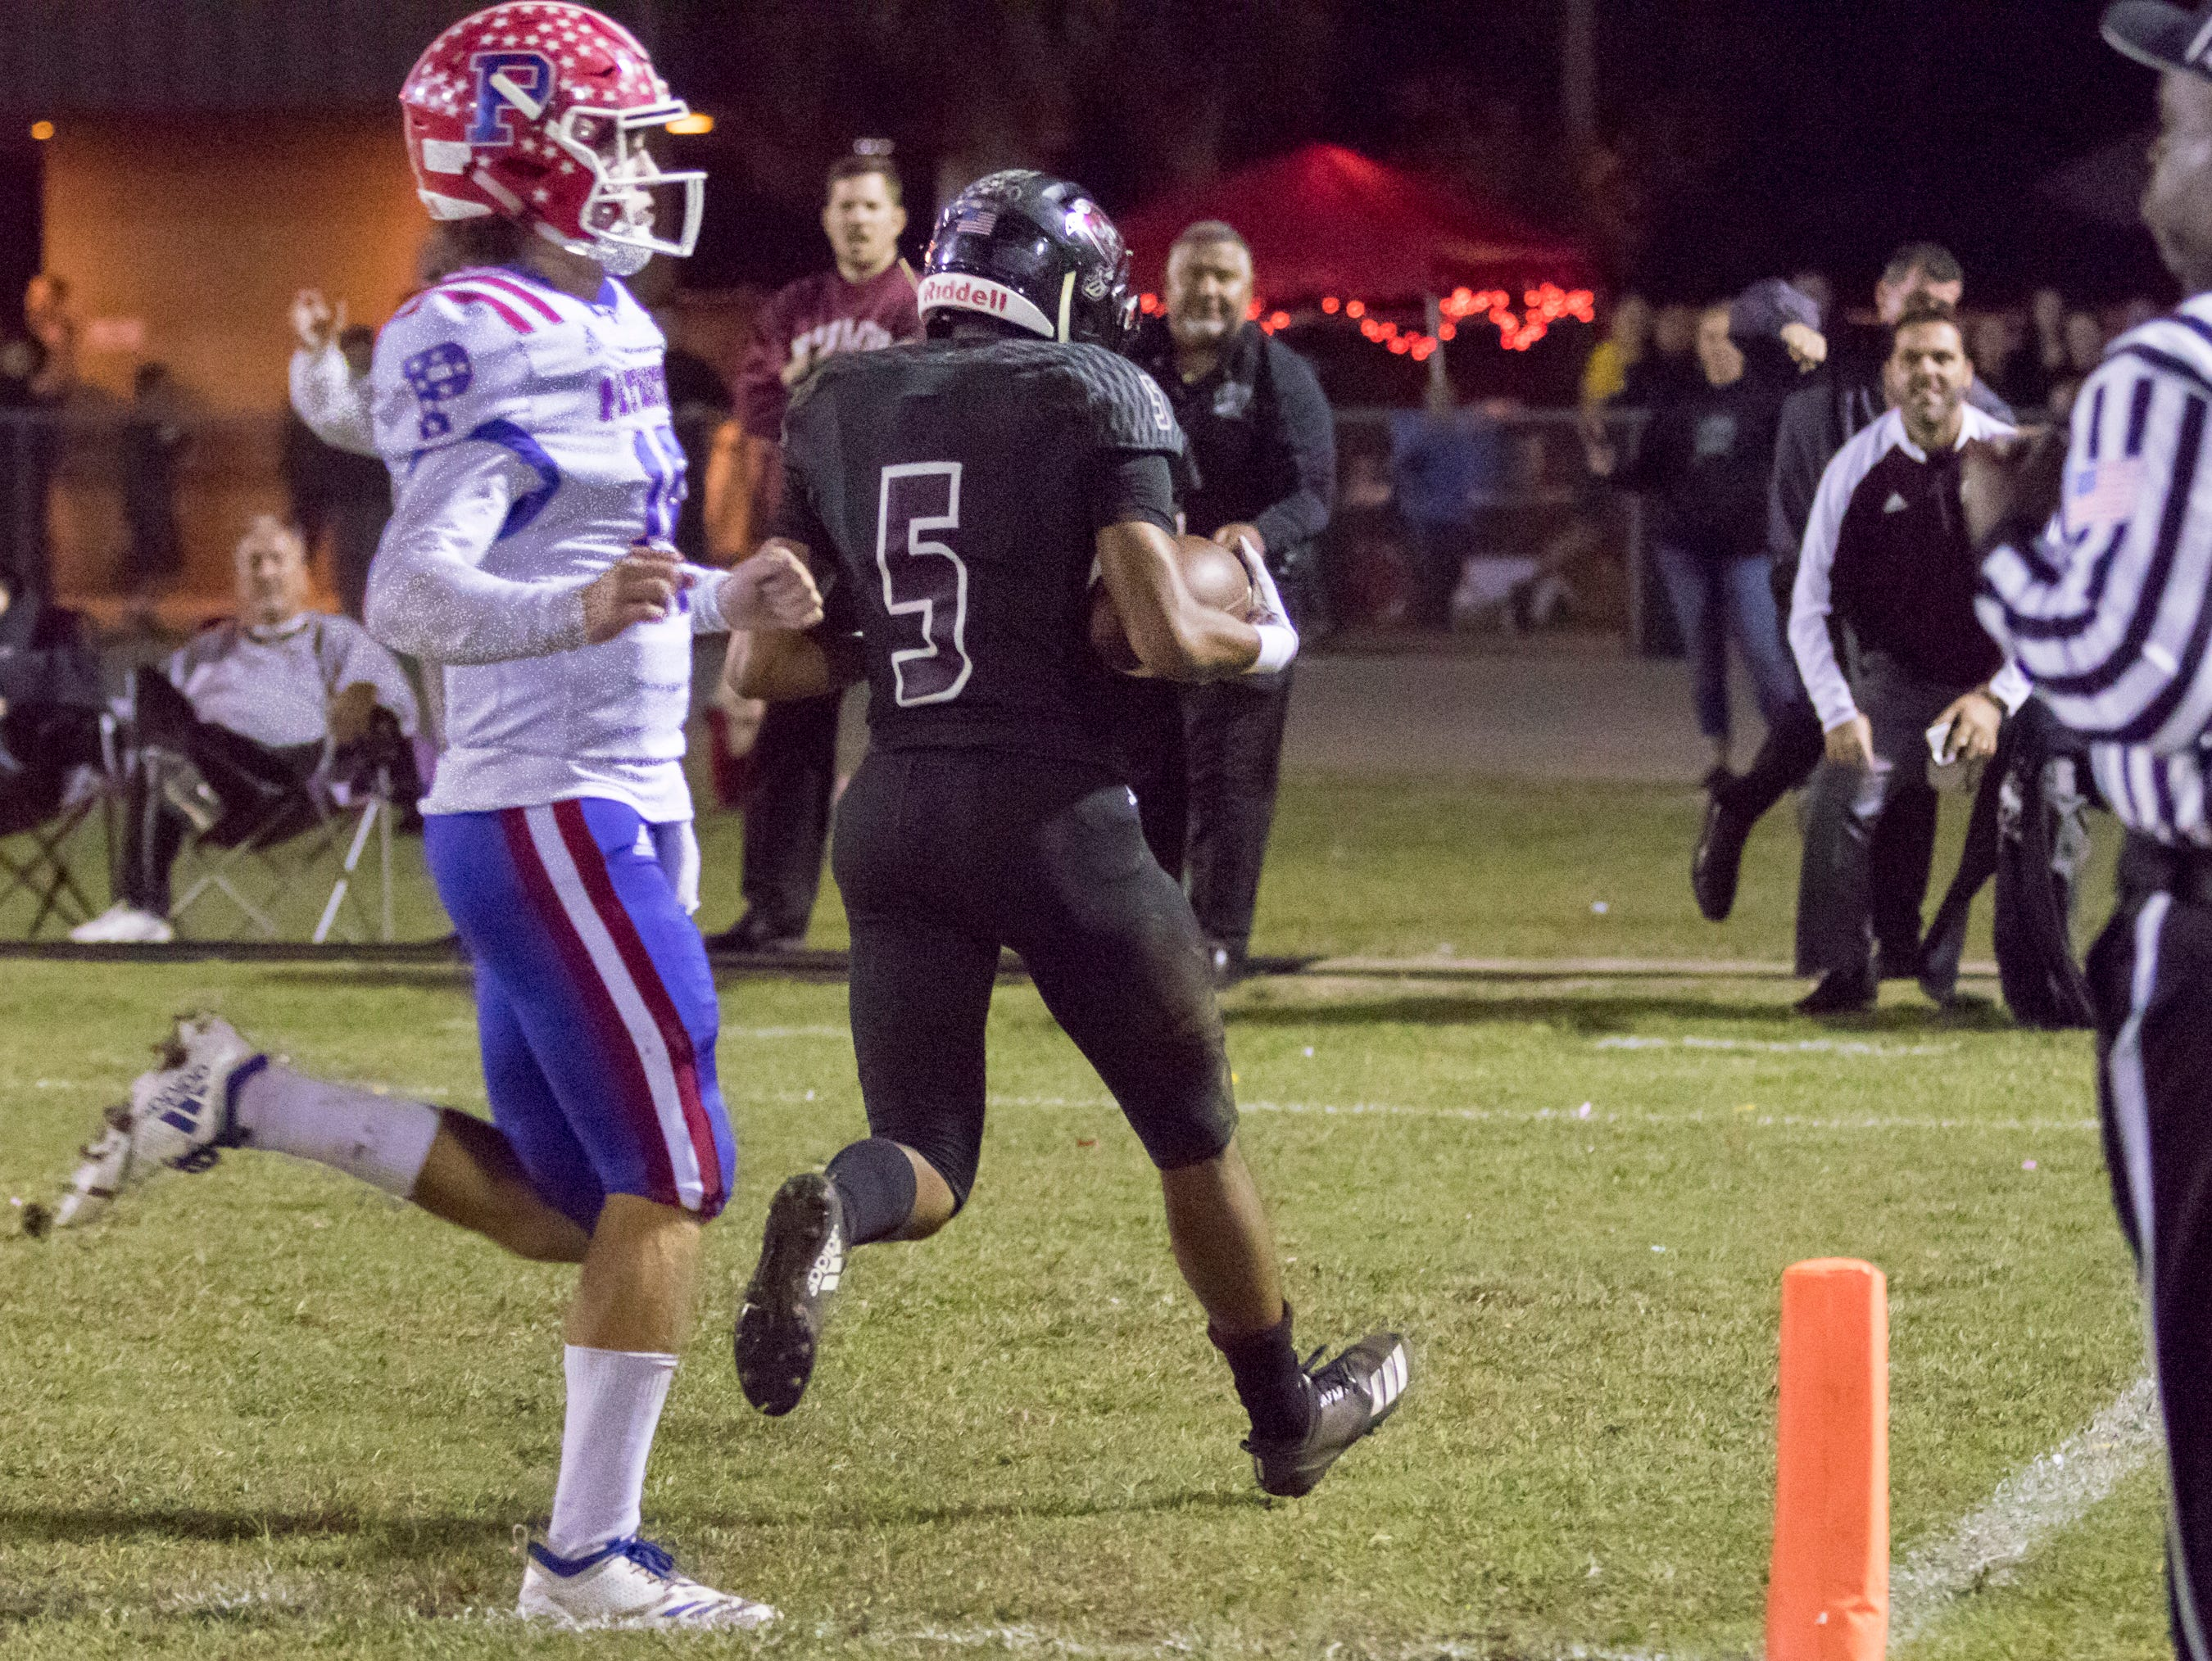 Dante Wright (5) runs for a touchdown a and a 10-0 Raiders lead after adding the extra point during the Pace vs Navarre playoff football game at Navarre High School on Friday, November 9, 2018.